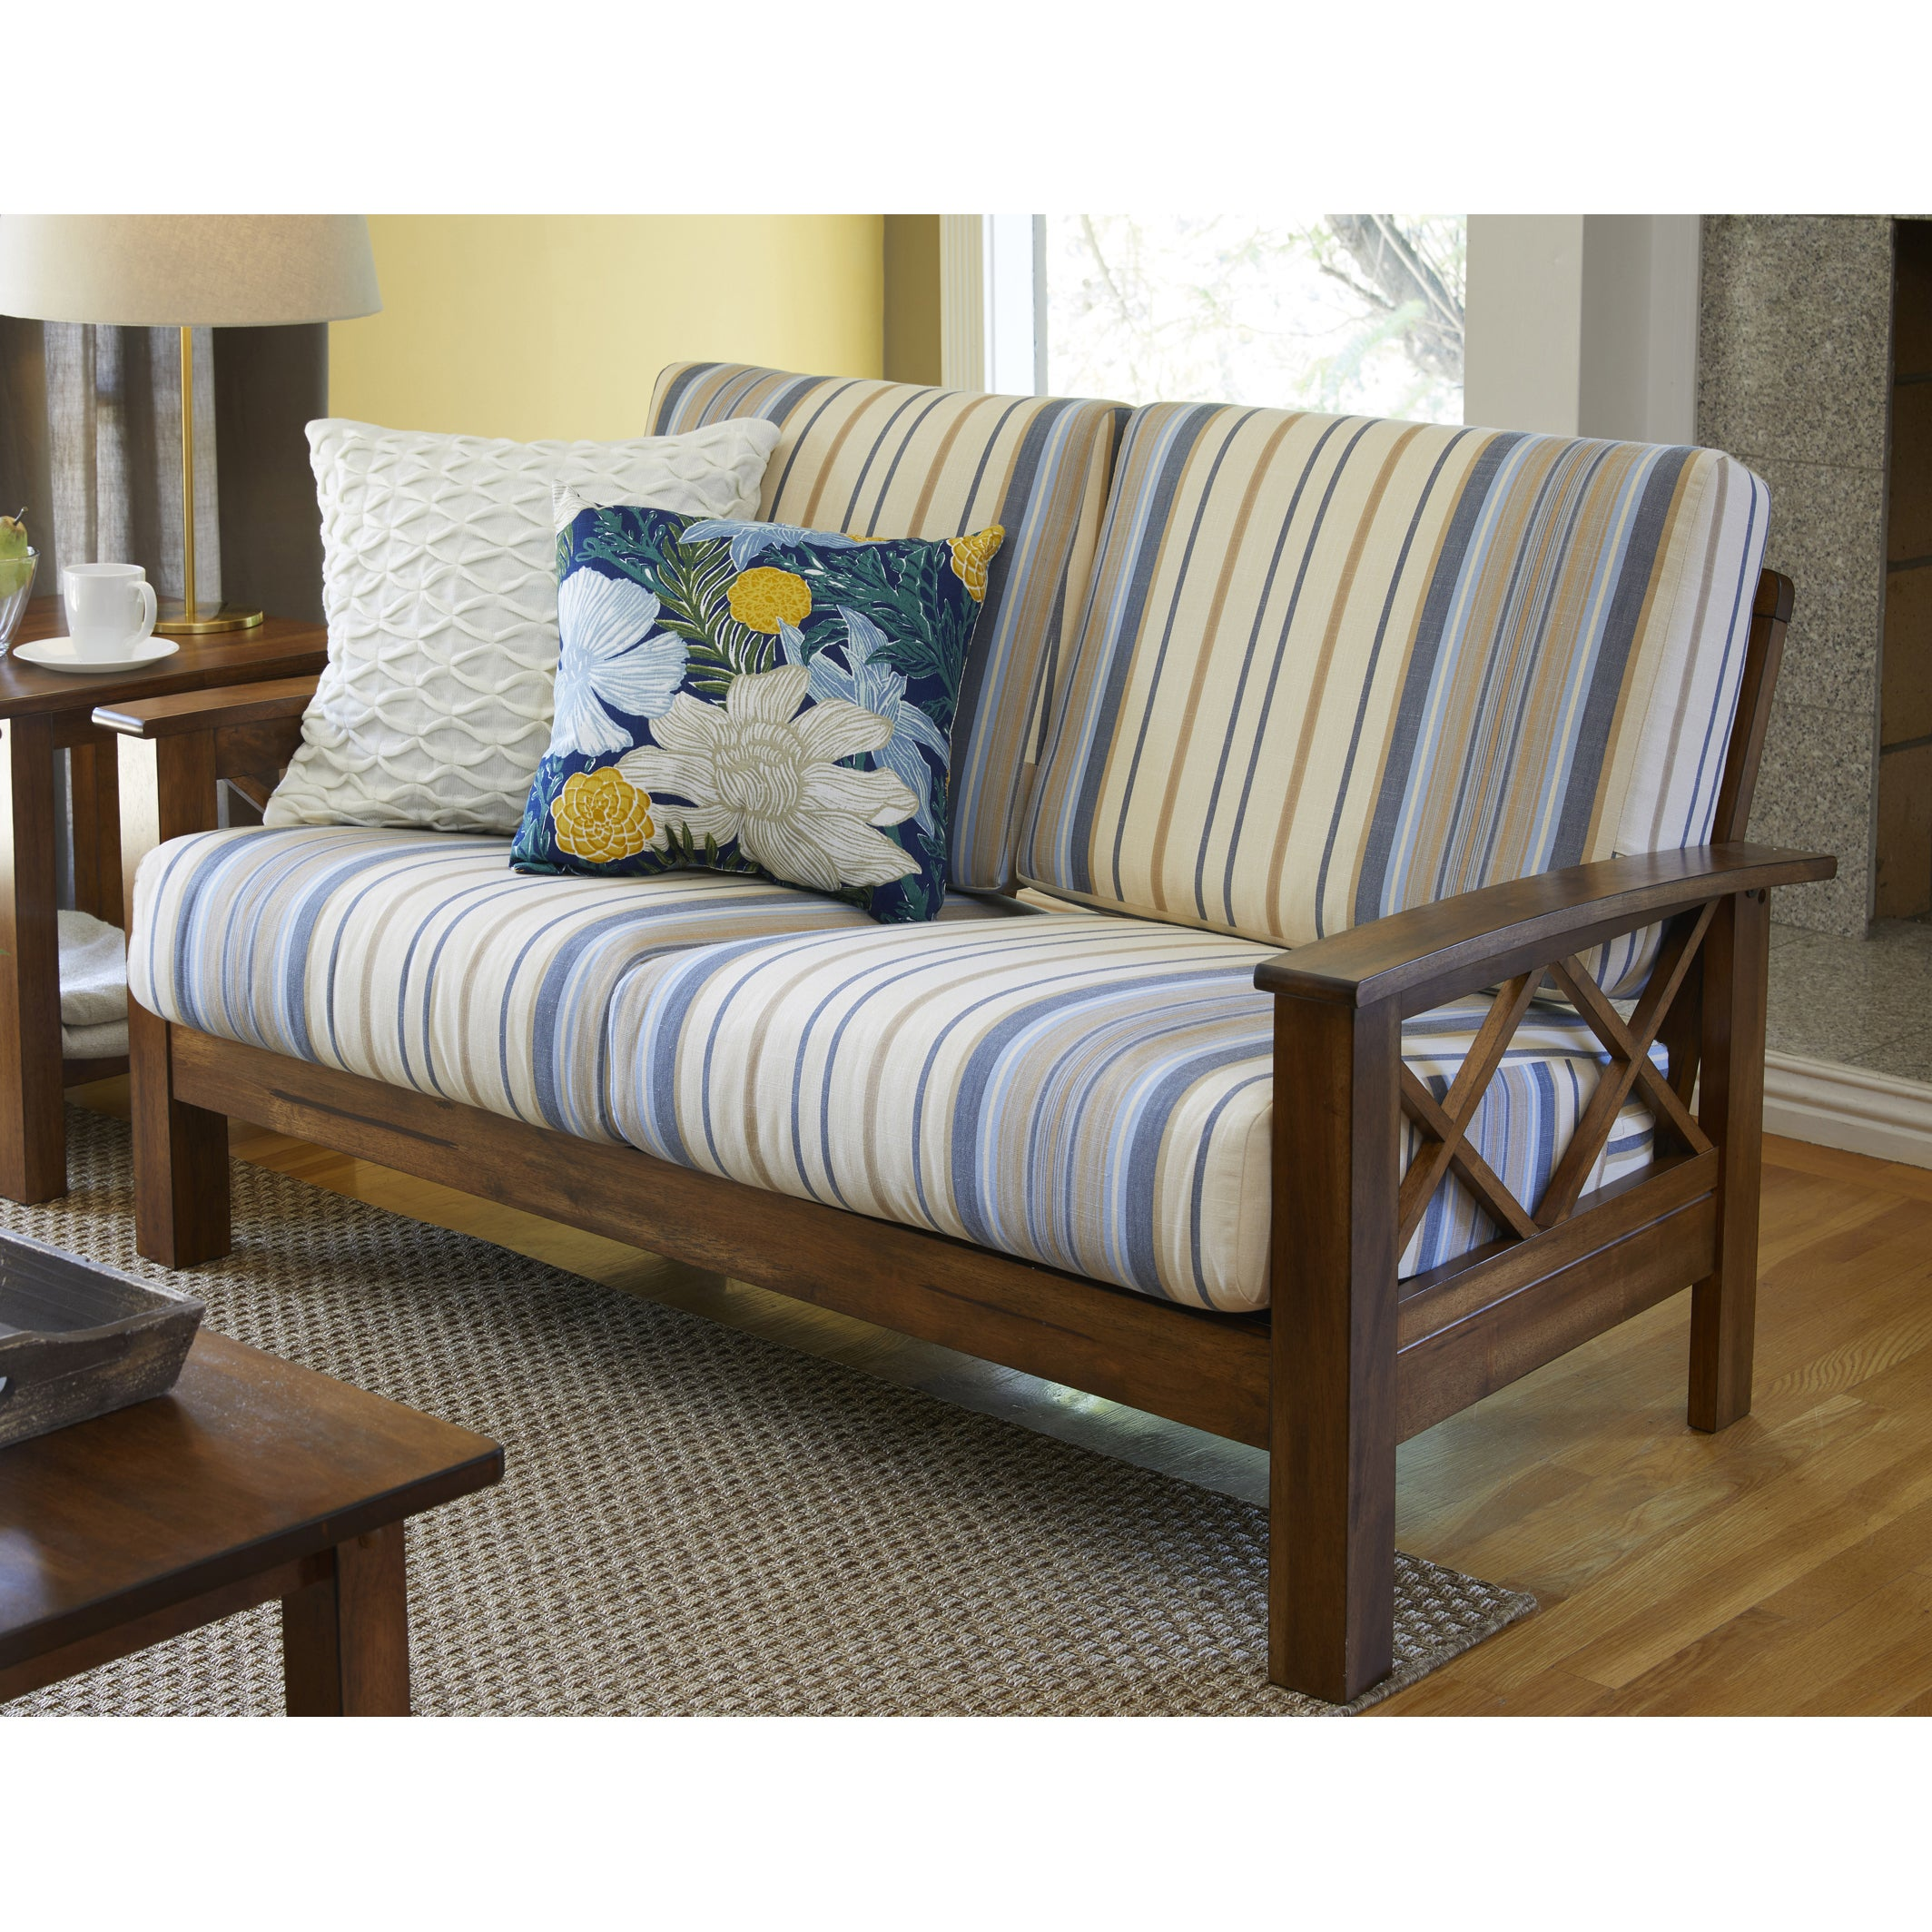 overstock skirted of frame classic today shipping free america laurel wood loveseat home product furniture upholstery garden fabric